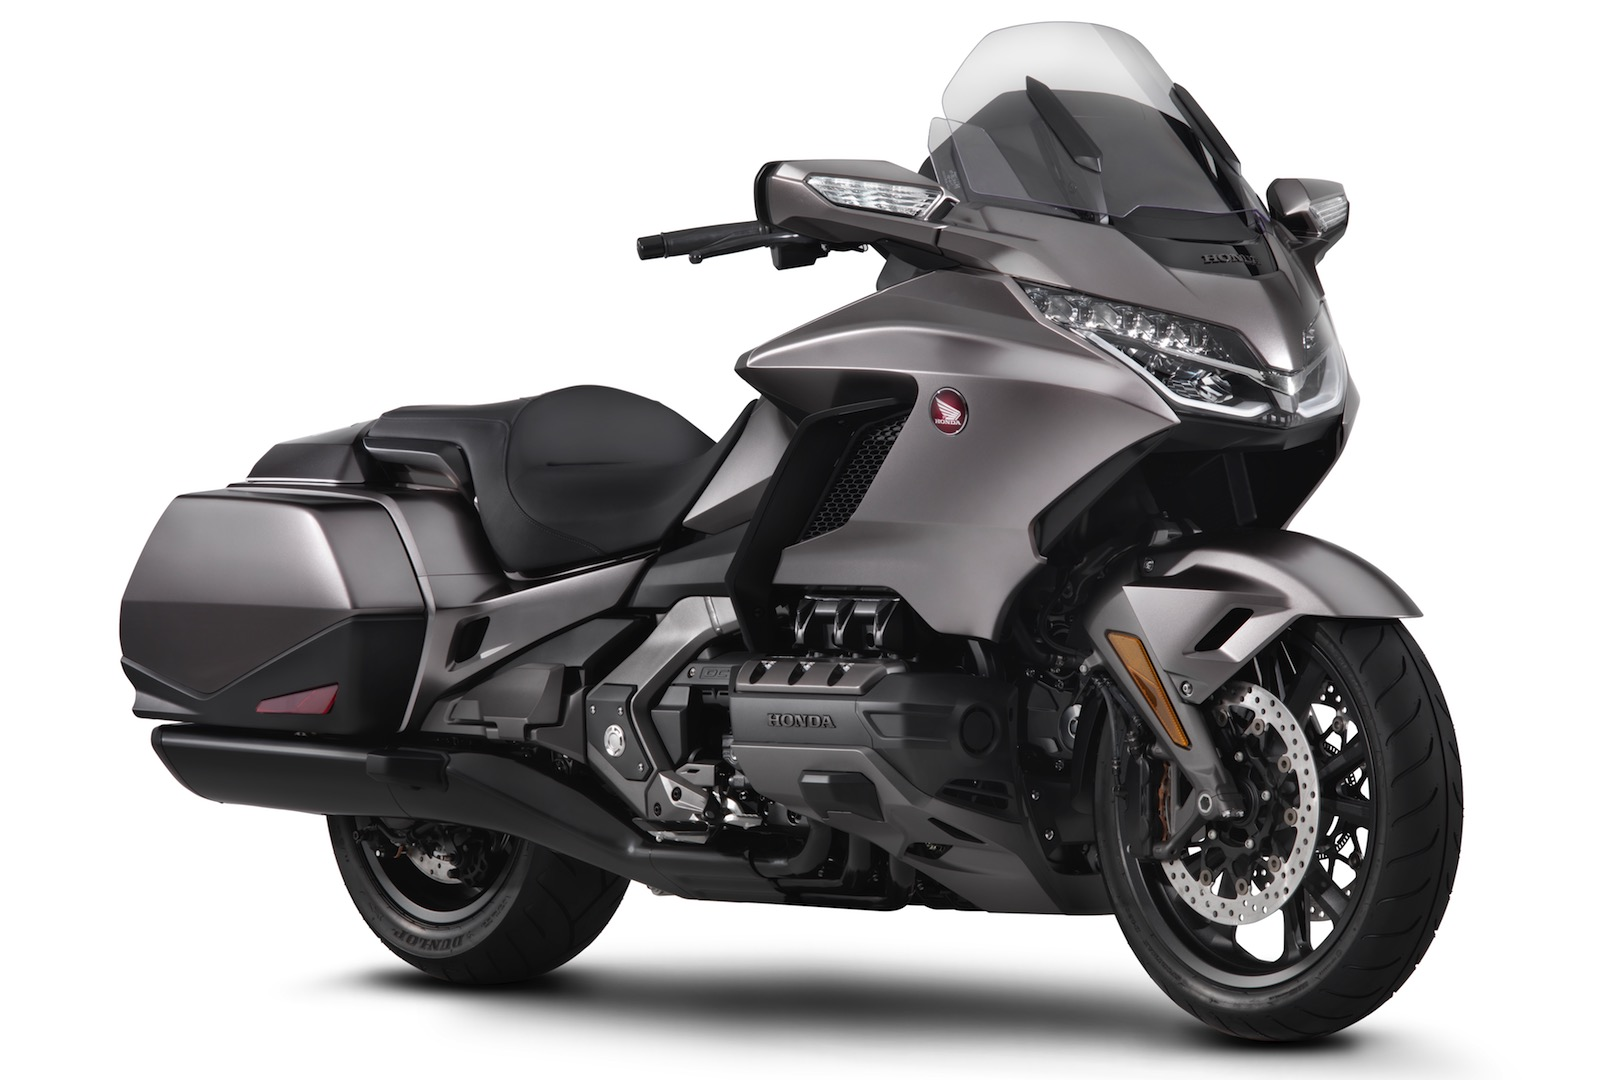 2018 honda gold wing first look 18 fast facts 2018 honda gold wing price fandeluxe Gallery